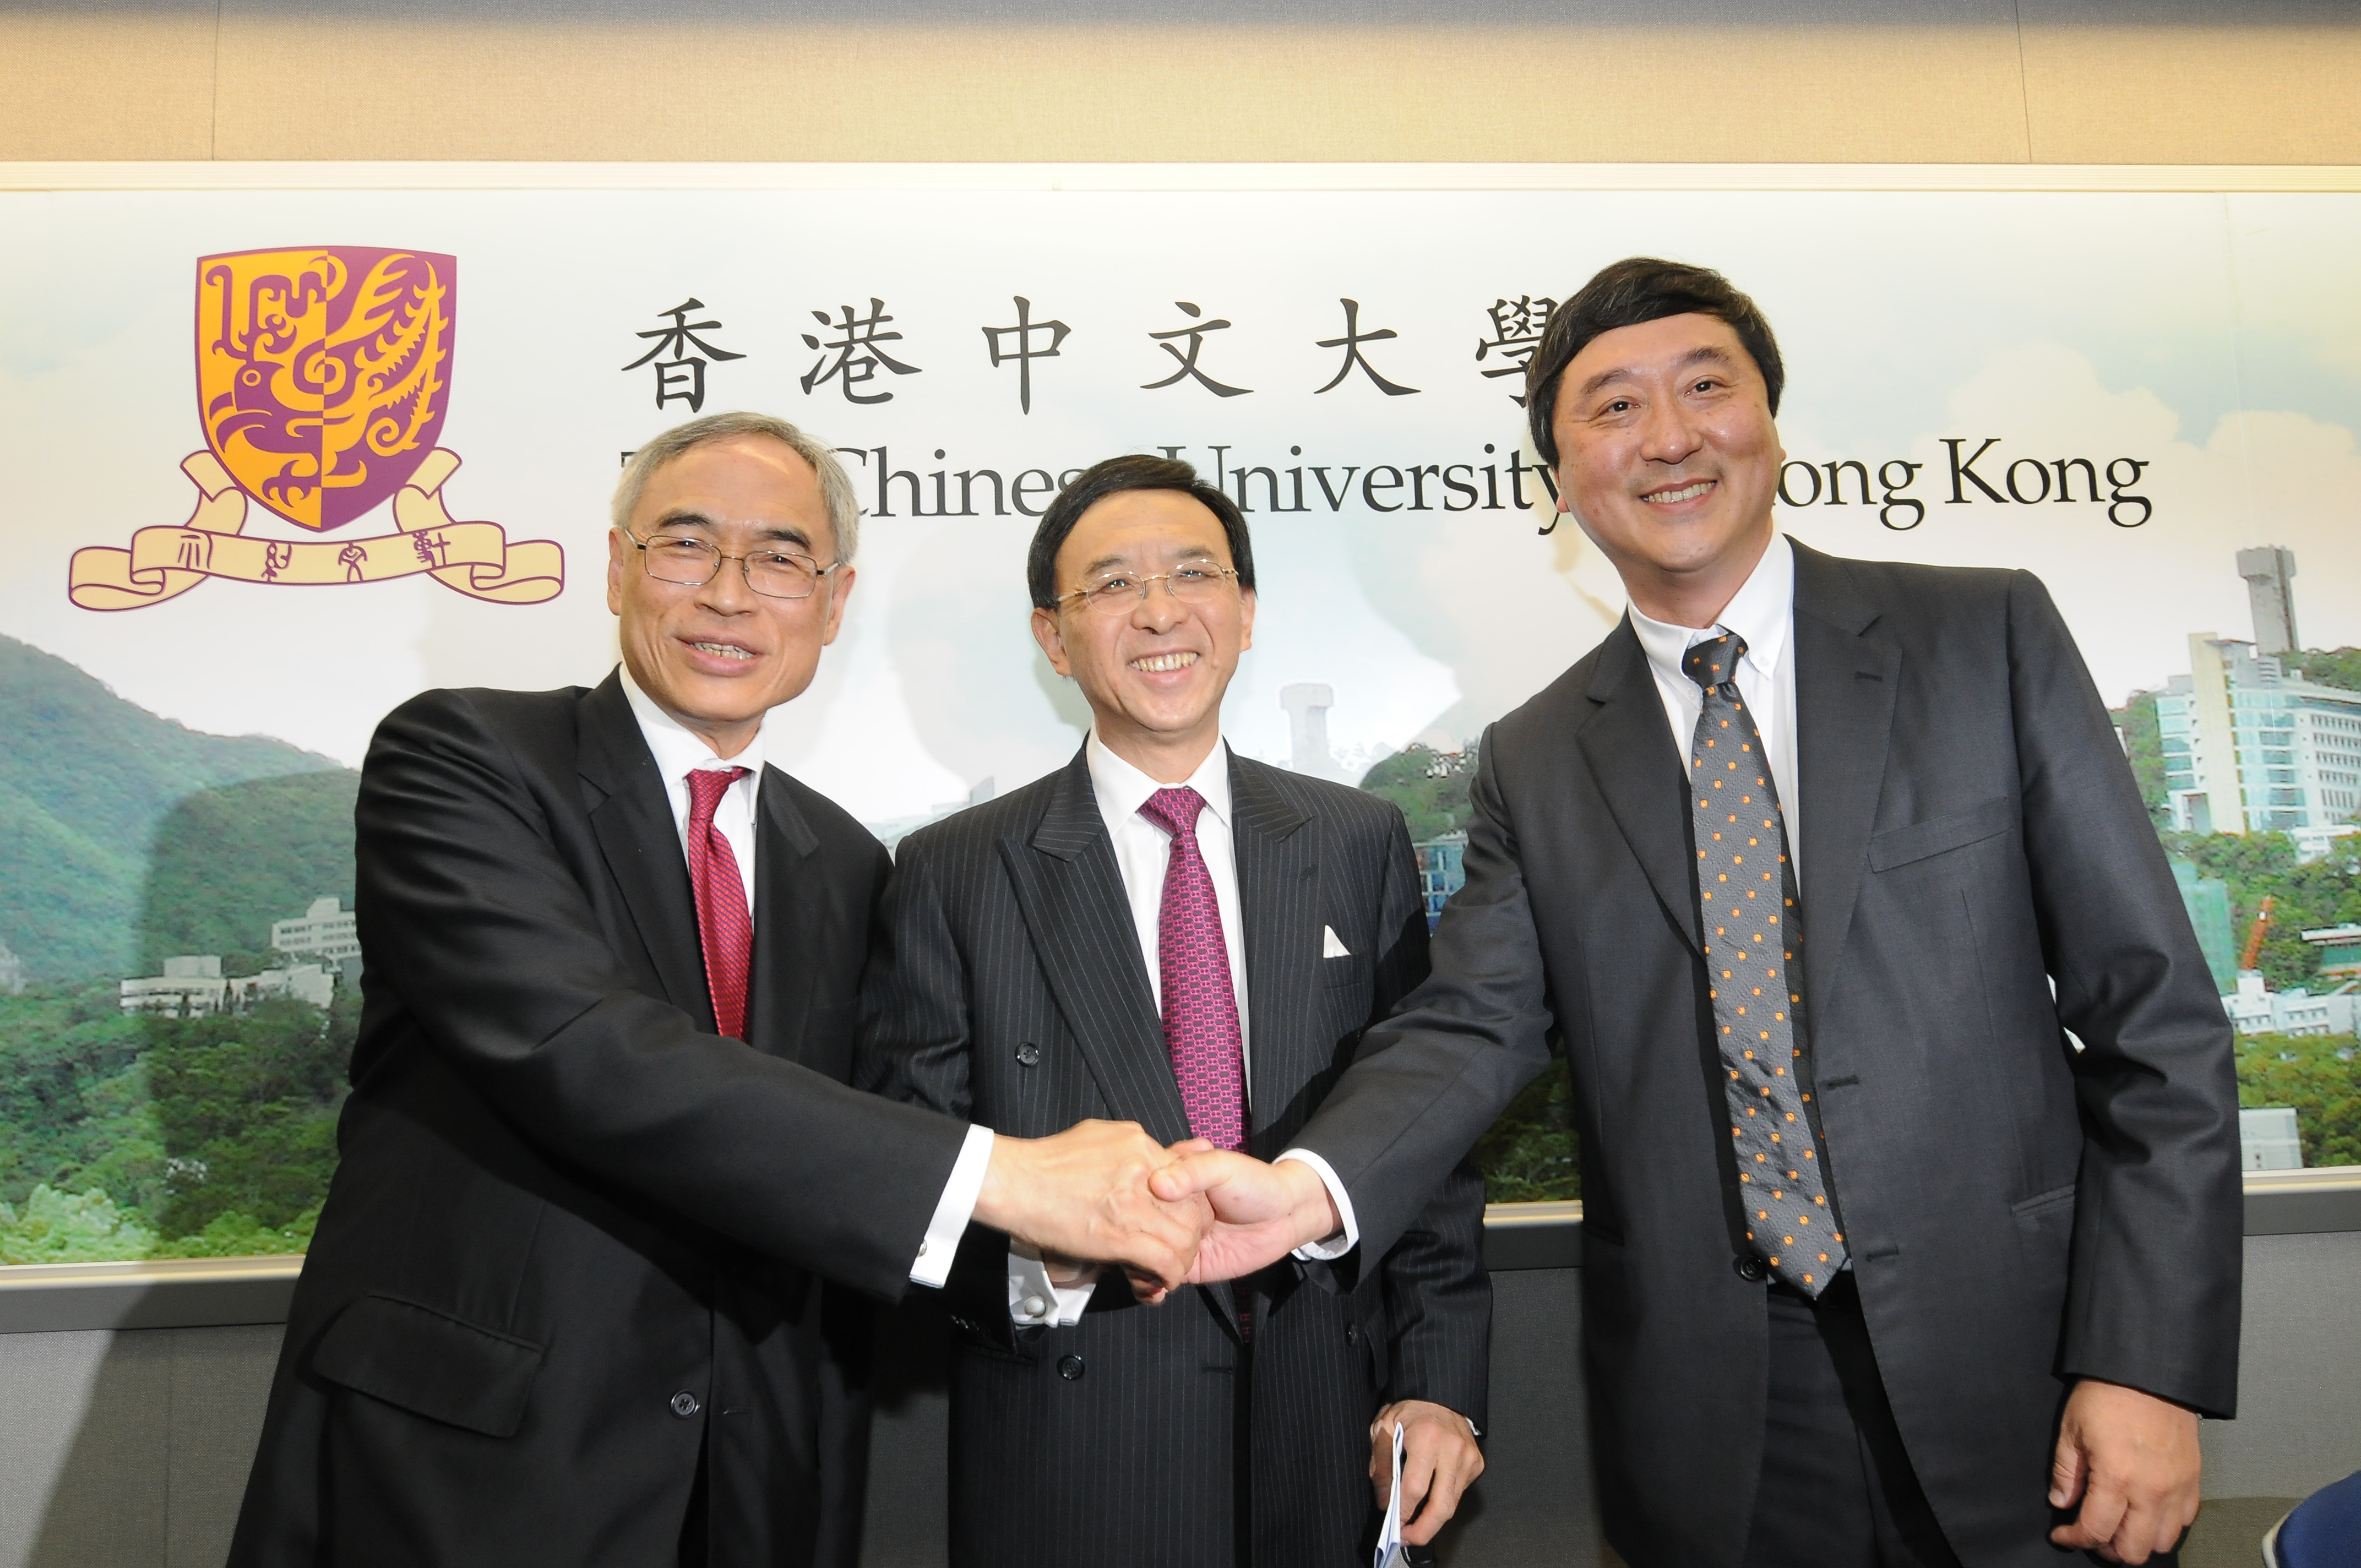 From left: Prof. Lawrence J. Lau, Dr. Vincent Cheng and Prof. Joseph Sung